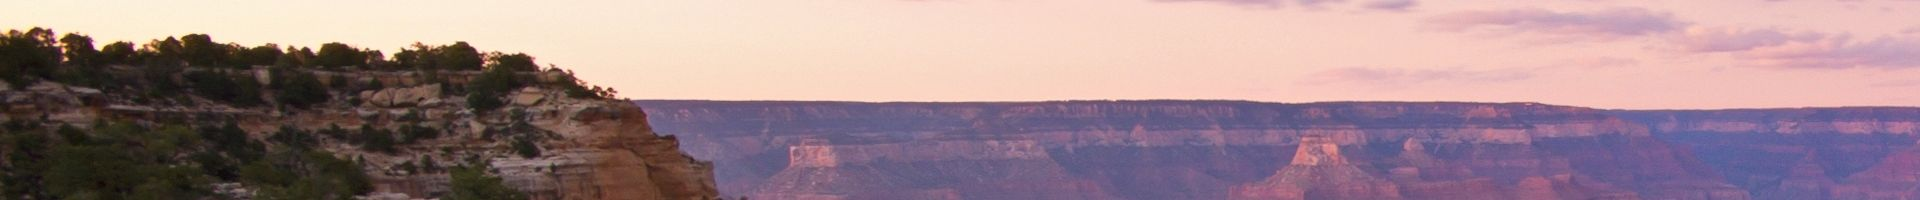 The Grand Canyon National Park with pink light from the sunset scattered across the stone walls.